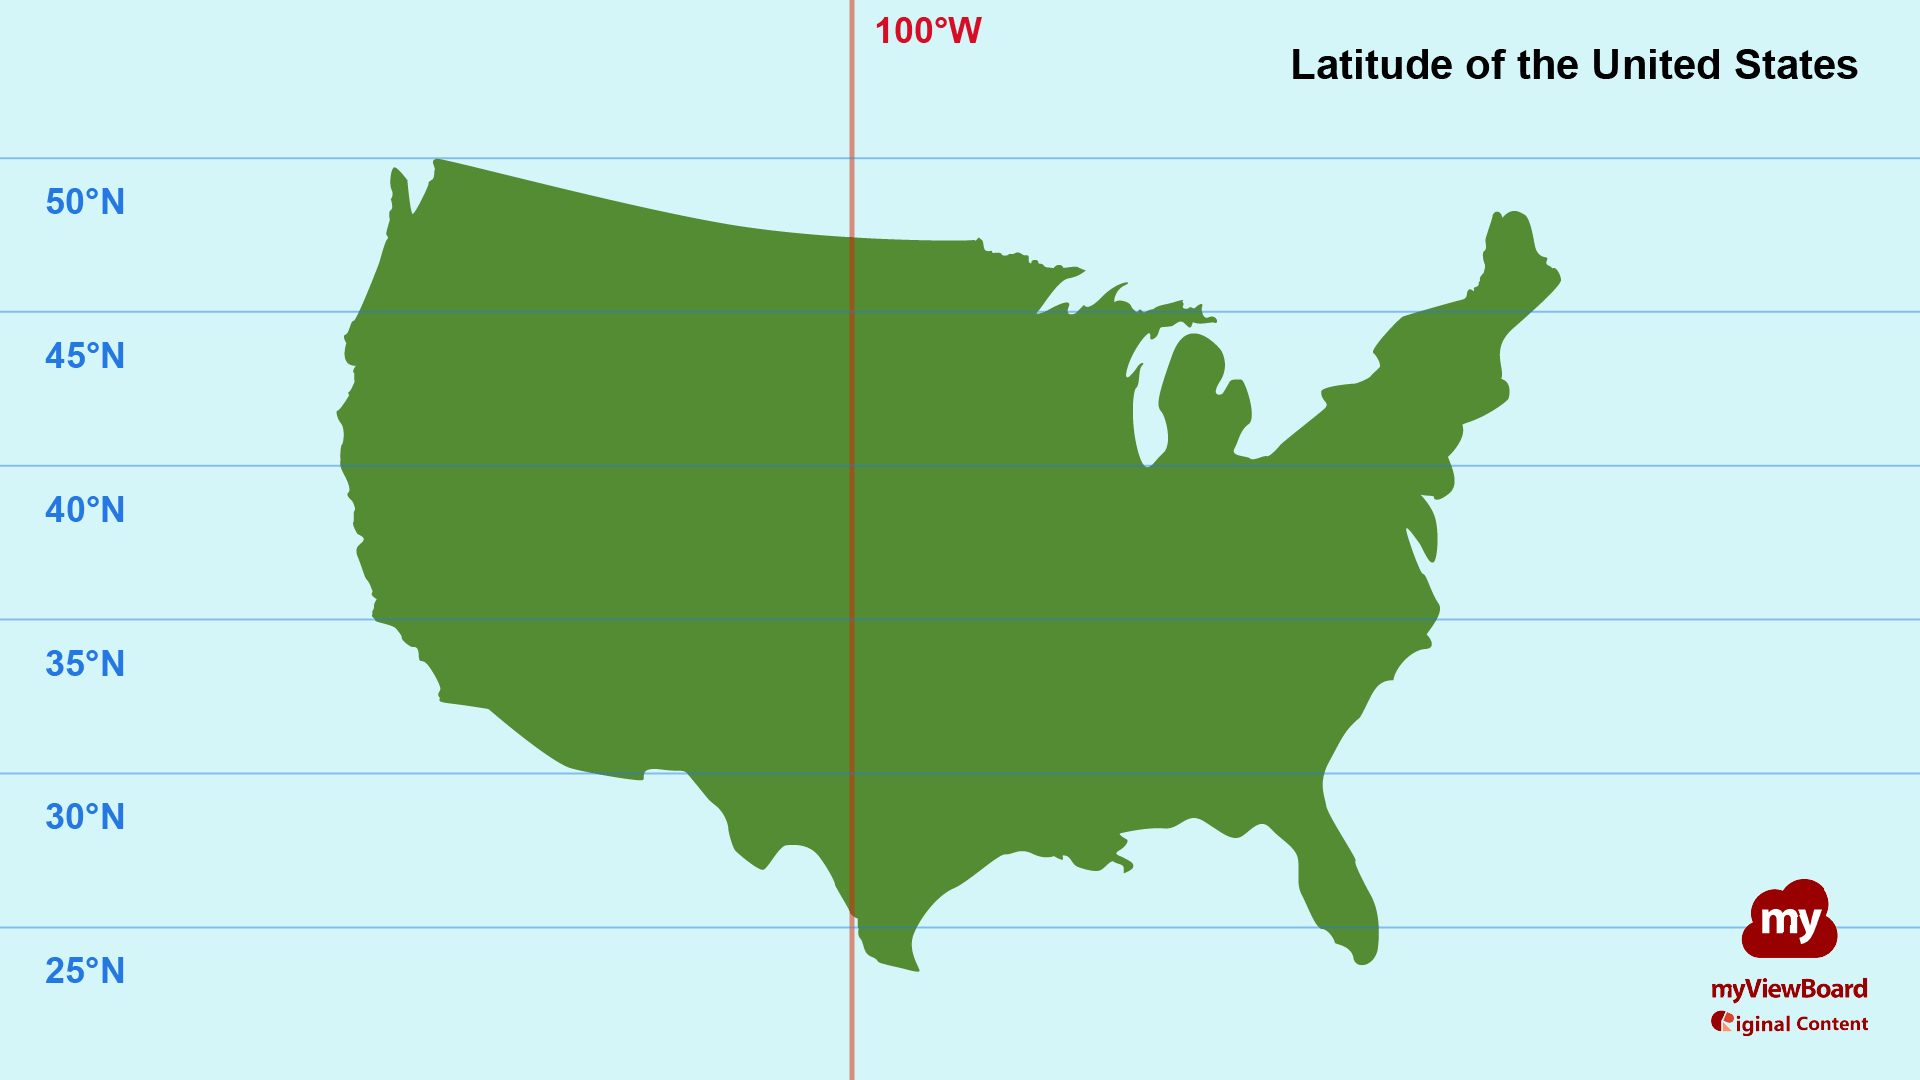 OCBnew thumbnail Latitude of the United States commentary logo Full HD.png